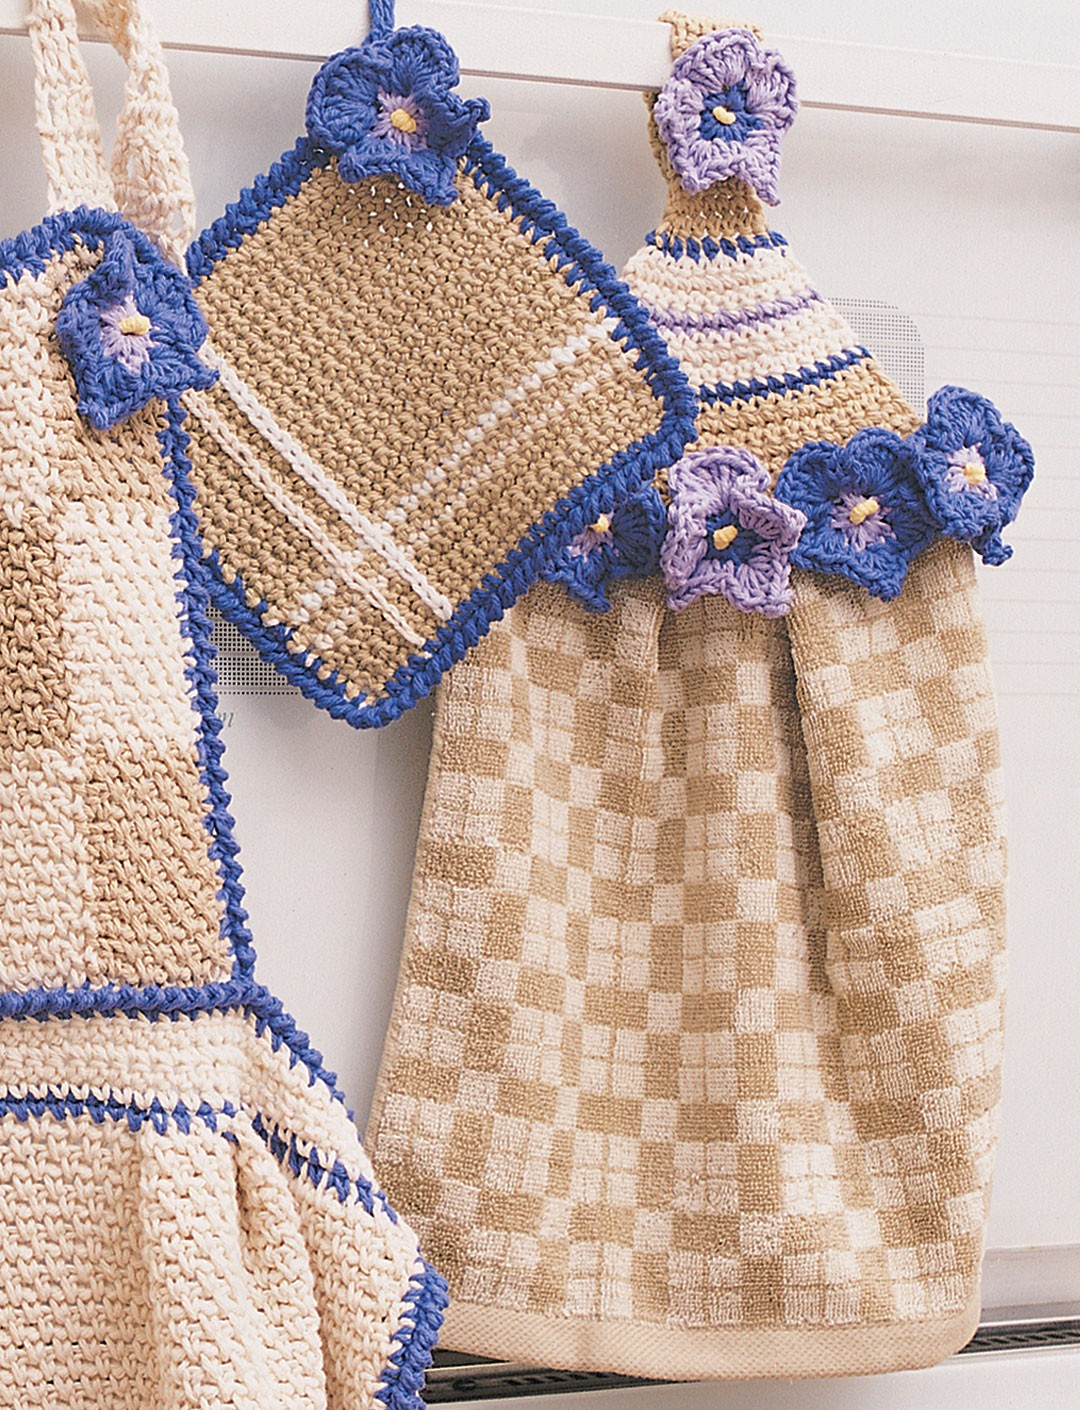 Free Crochet Patterns For Kitchen Towel Holders : Bernat Towel Topper & Pot Holder, Crochet Pattern ...